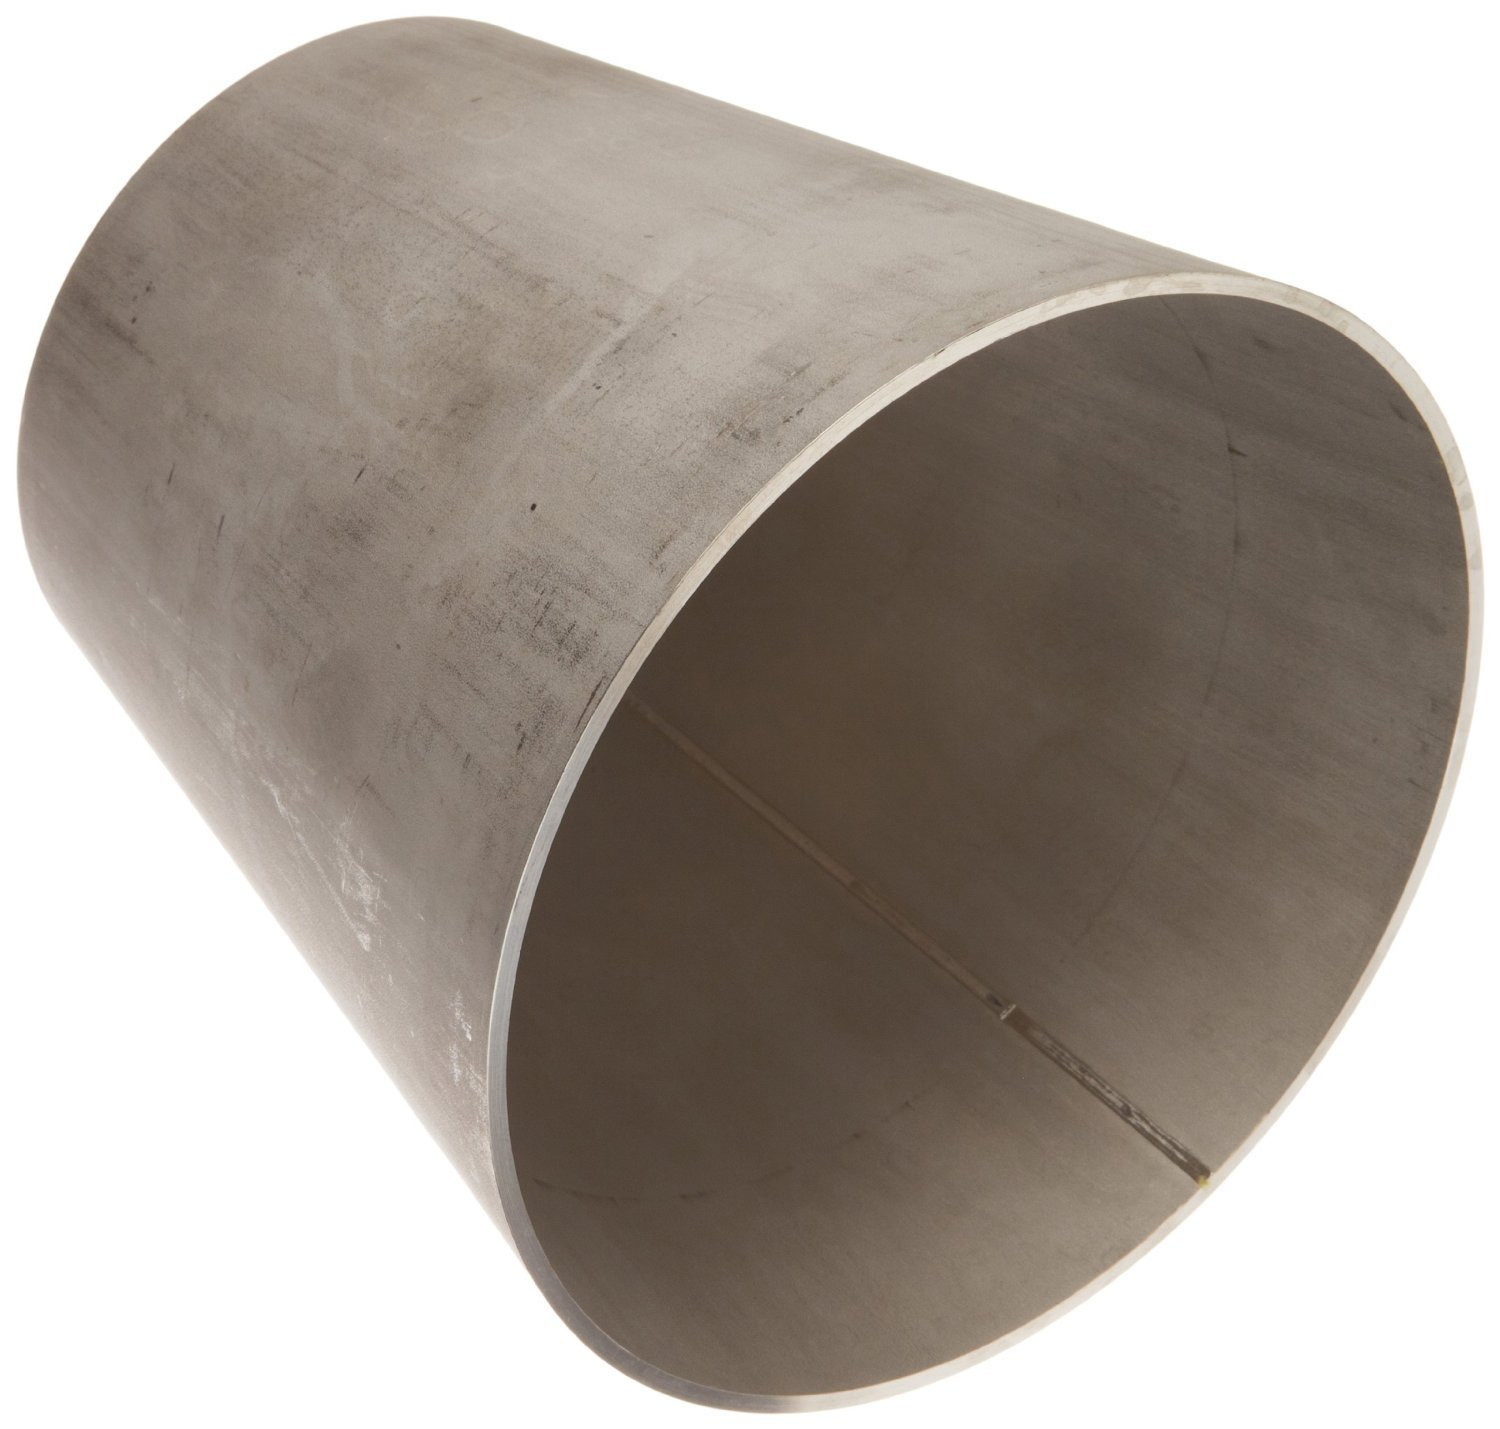 DixonB31W-G600400U Stainless Steel 304 Sanitary Fitting, Unpolished Weld Concentric Reducer, 6'' Tube OD x 4'' Tube OD